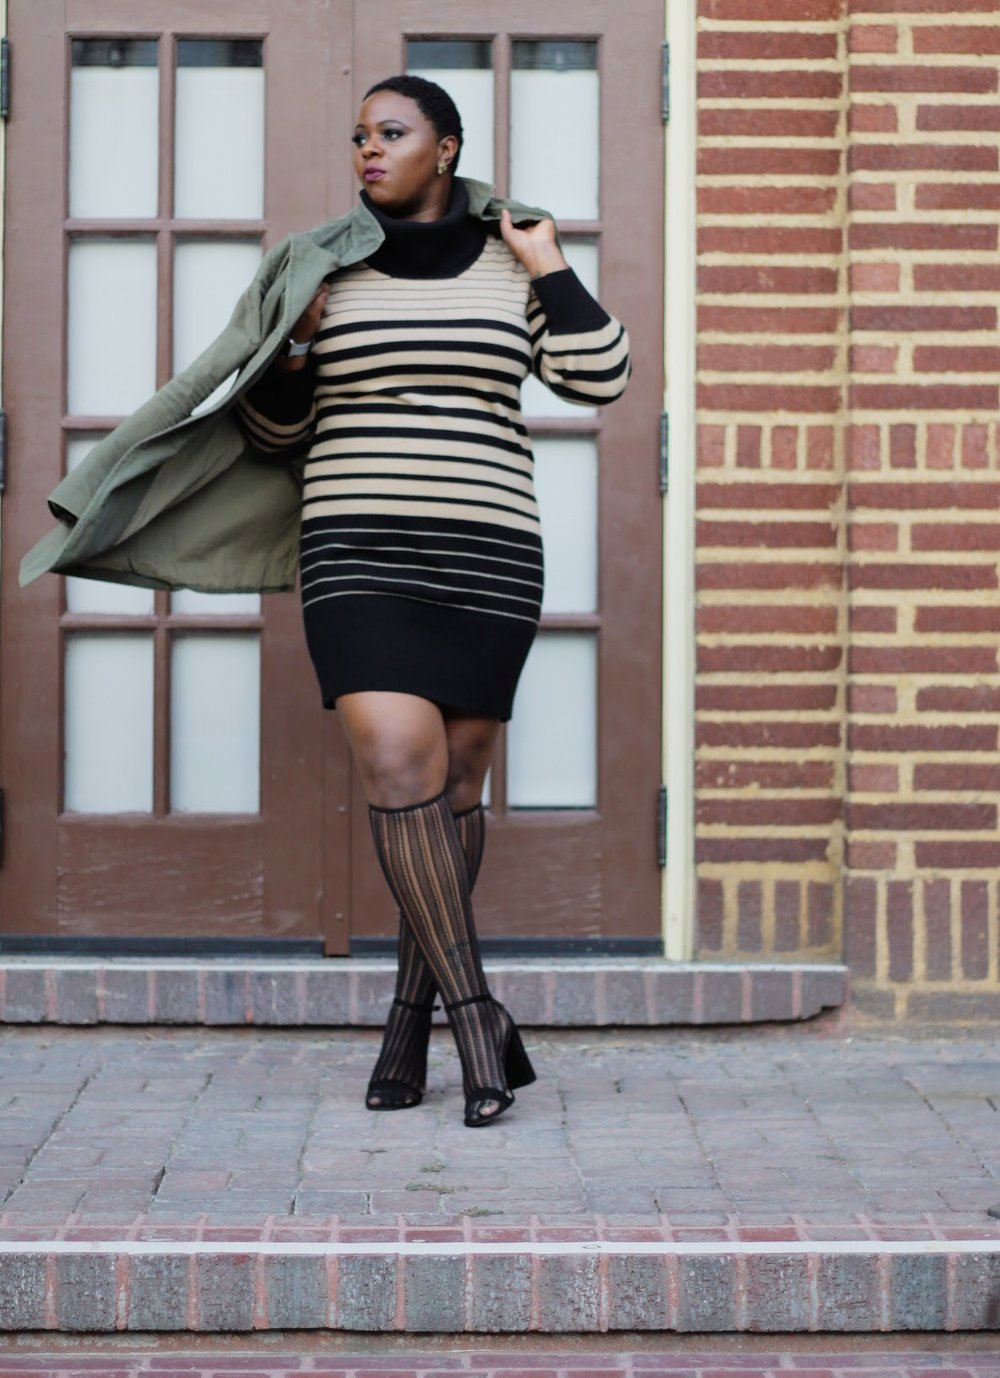 fashion Details   Coat : Oldnavy  Dress : Alanna's closet    knee Highs : Target    heels: Target  Mood :Unaplogeticlly Unstoppable